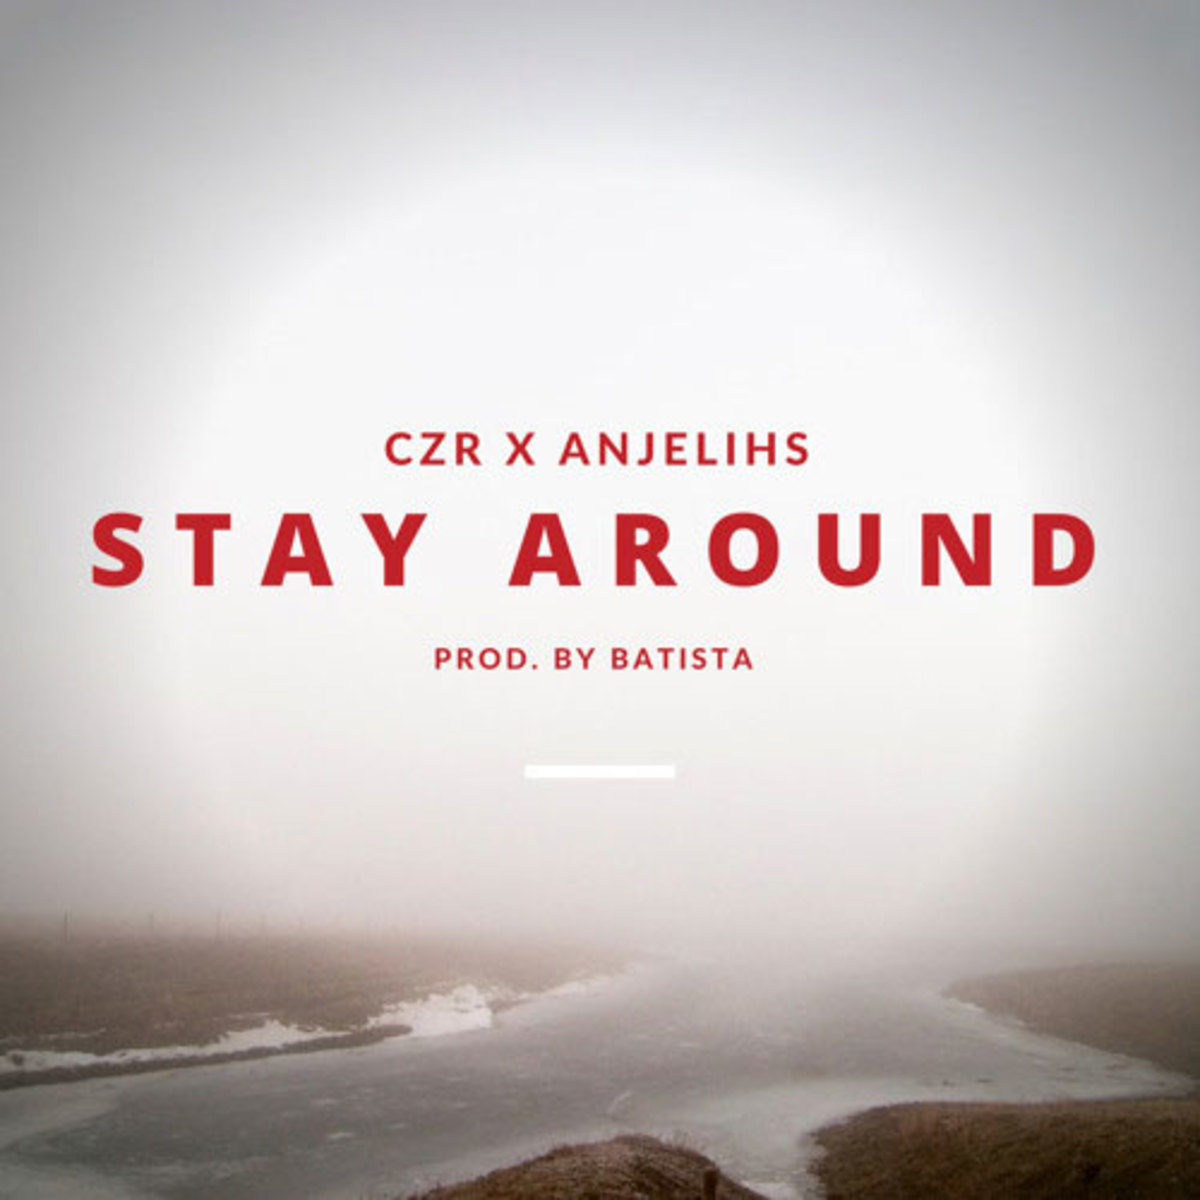 czr-stay-around.jpg